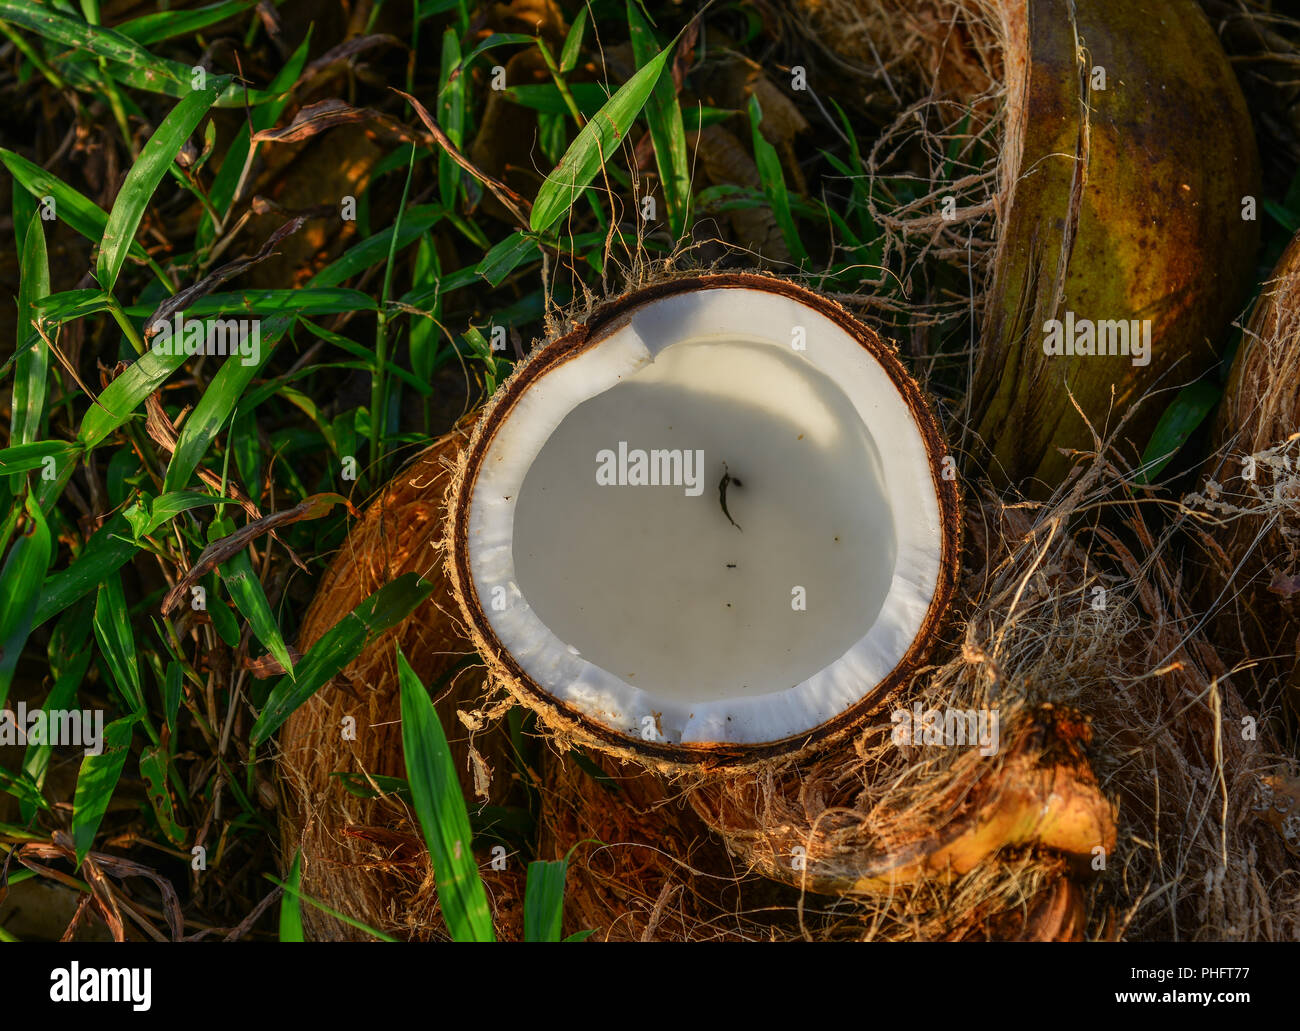 Pieces of coconut fruit on grass in Kien Giang, Vietnam. - Stock Image